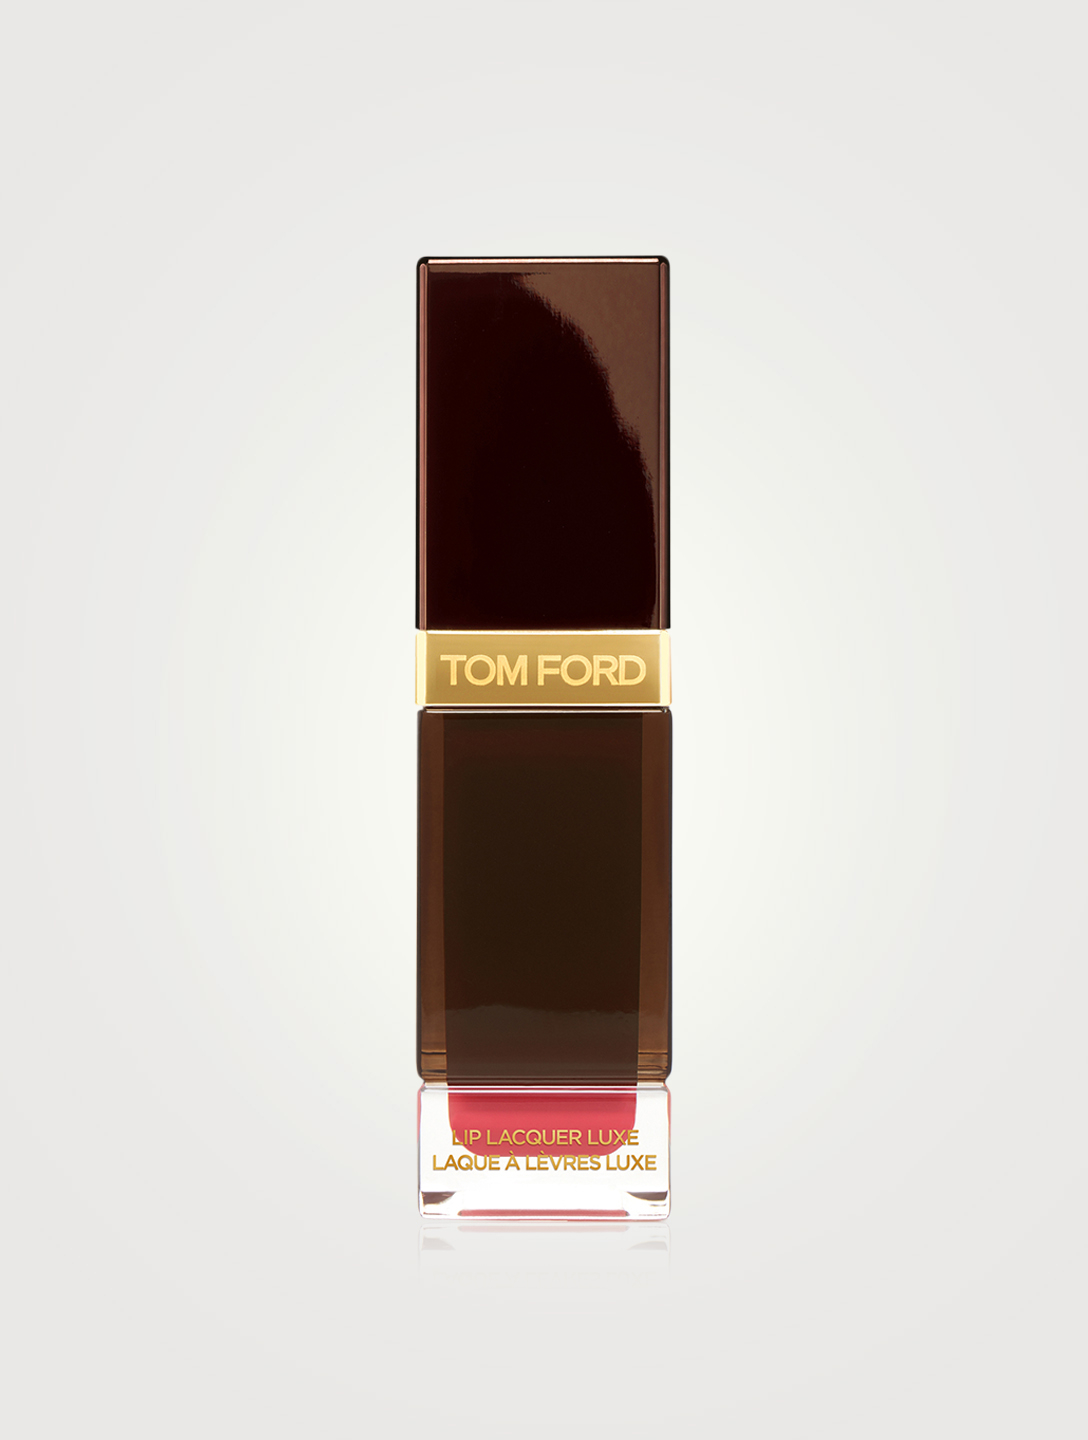 TOM FORD Liquid Vinyl Lip Lacquer Luxe Beauty Pink